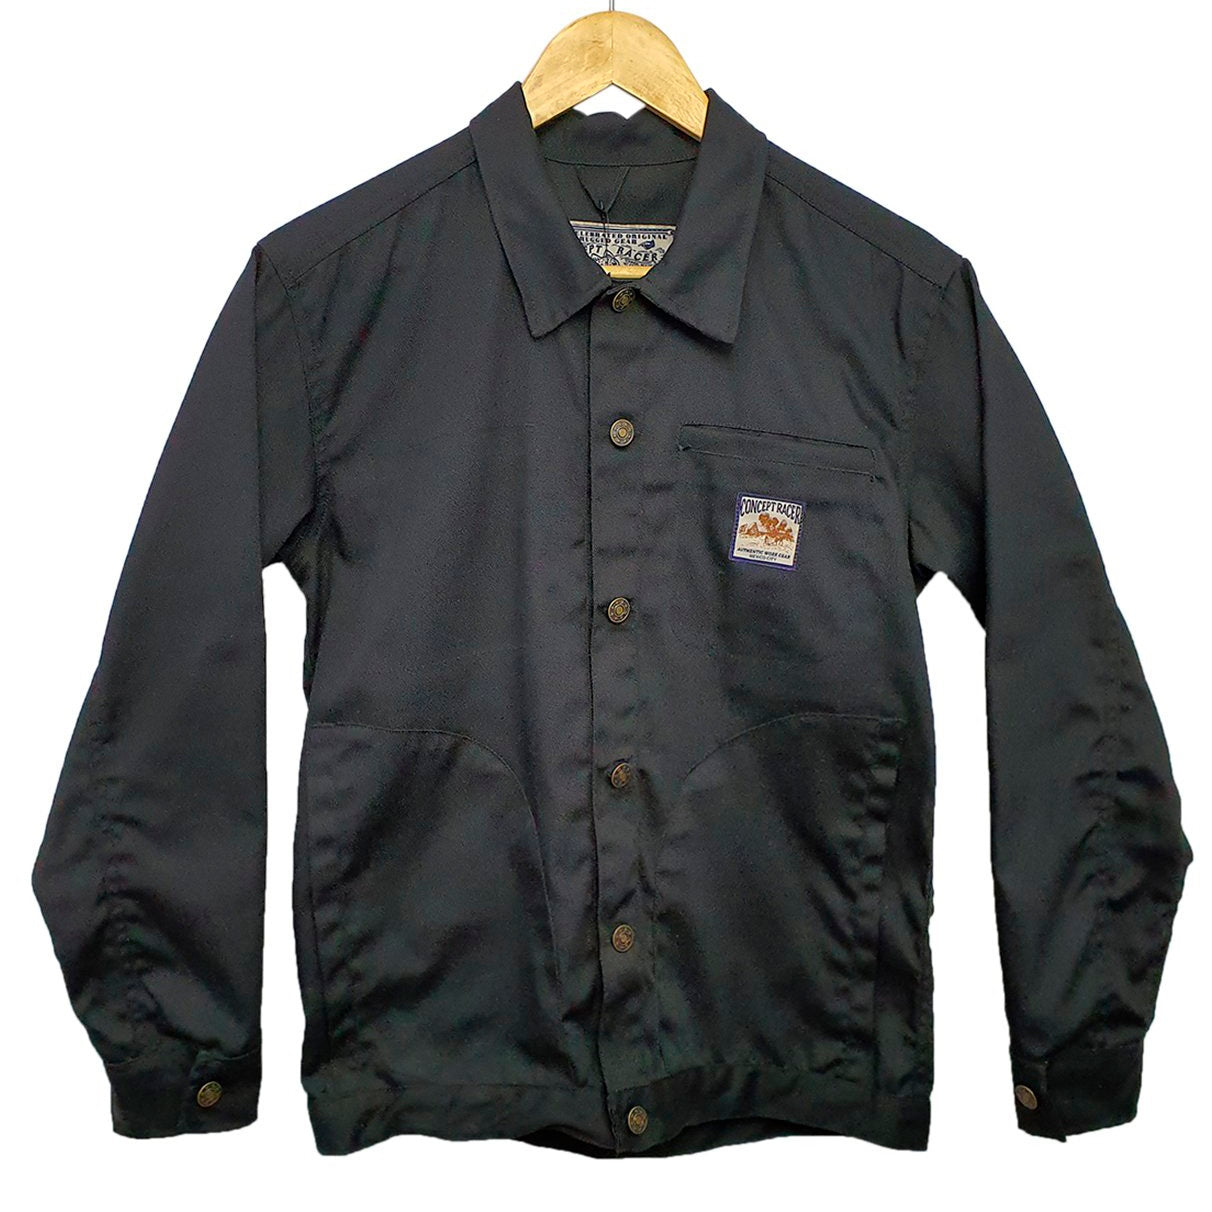 Black Work Overshirt - Concept Racer